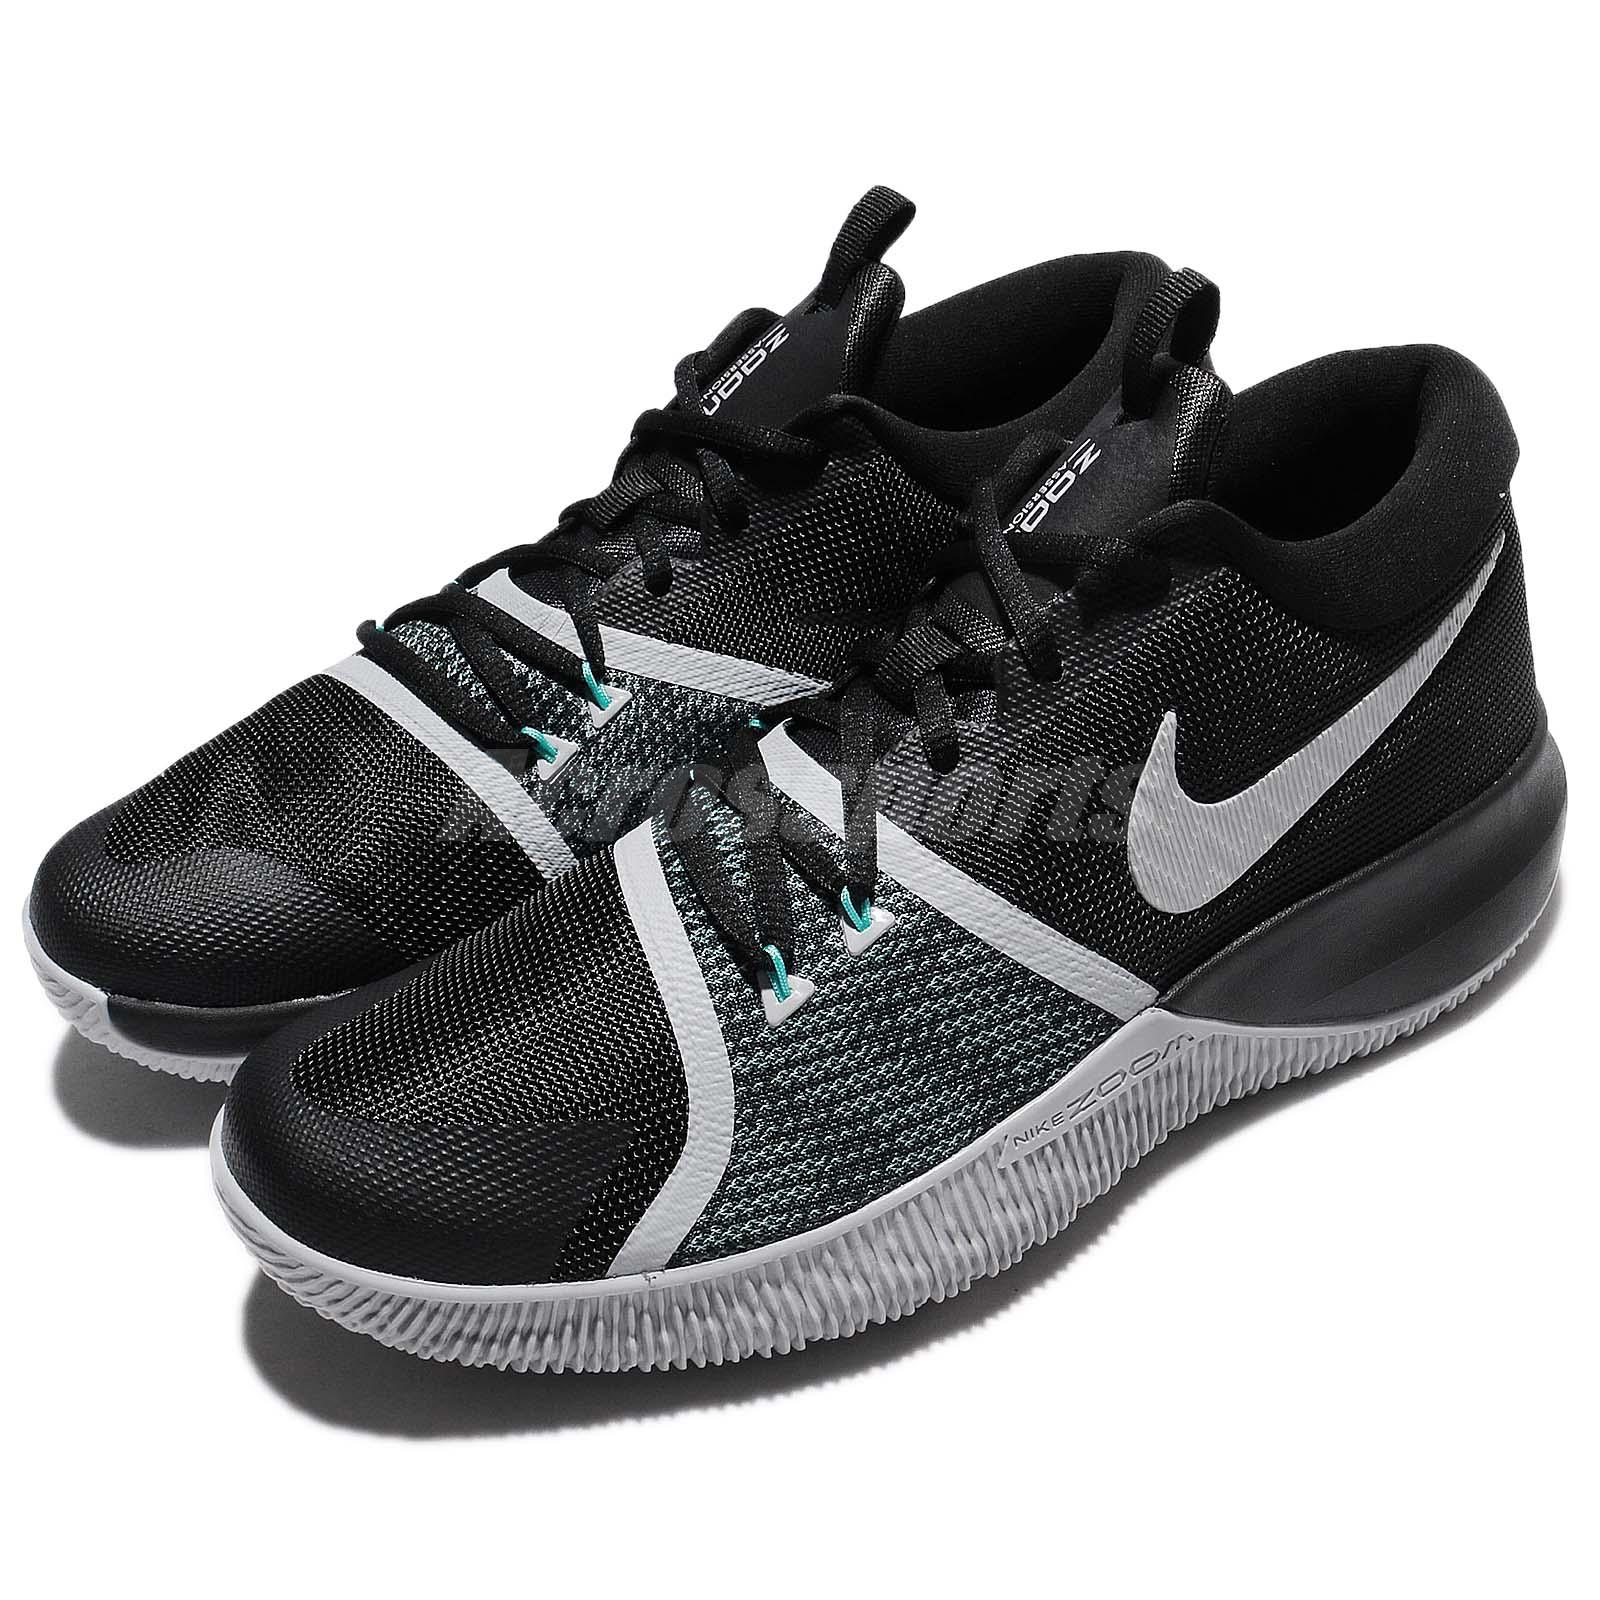 ad5cadfe593e Details about Nike Zoom Assersion EP XDR Air Black White Grey Men  Basketball Shoes 917506-004